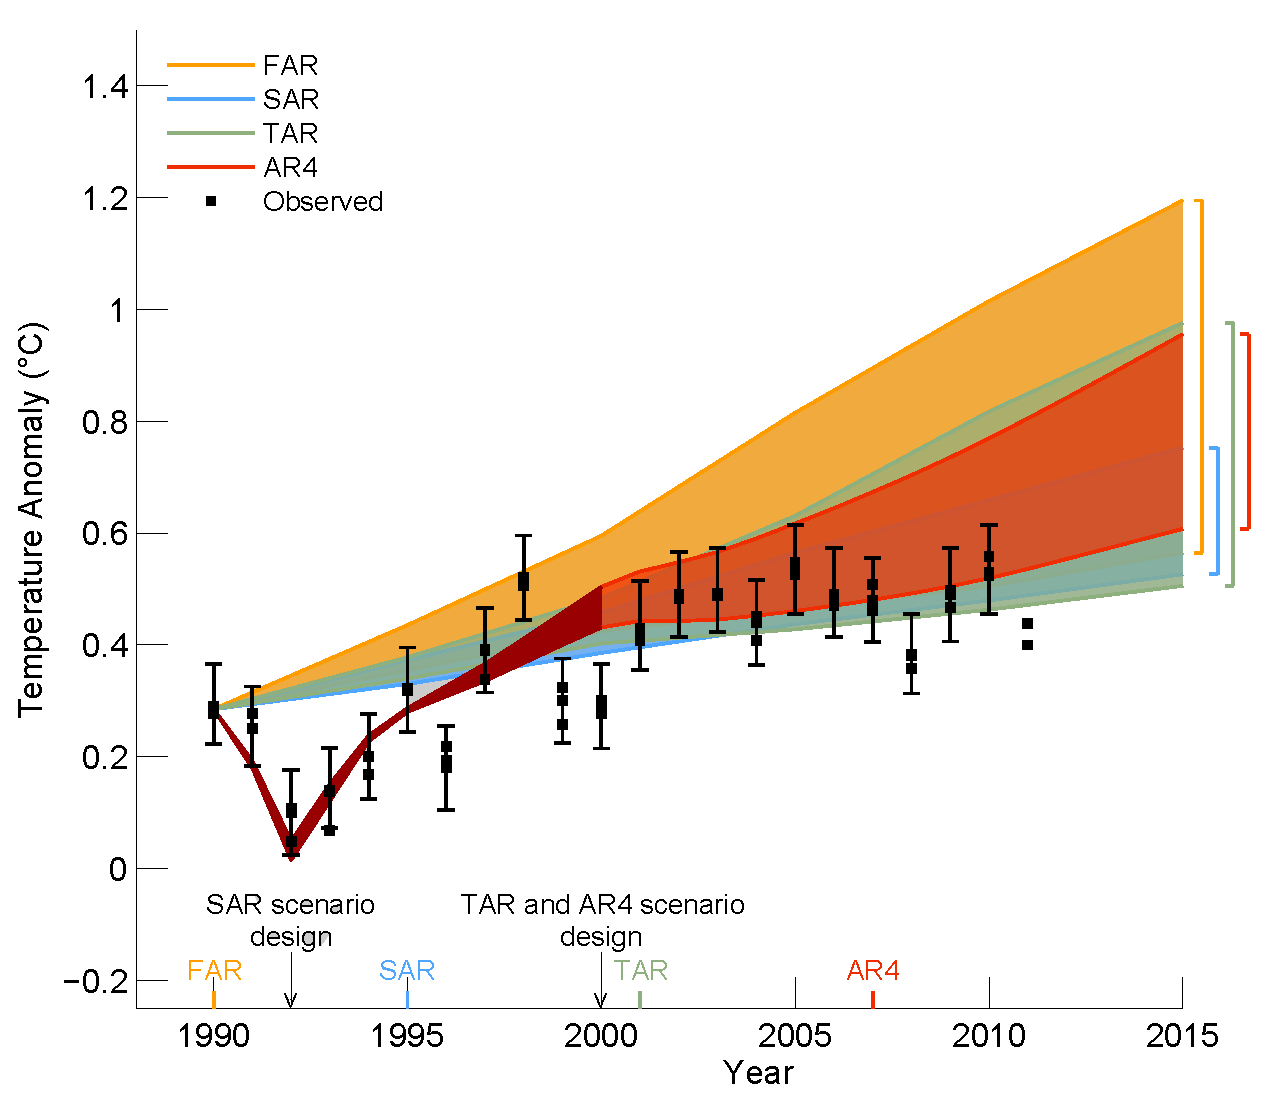 ipcc_ar5_draft_fig1-4